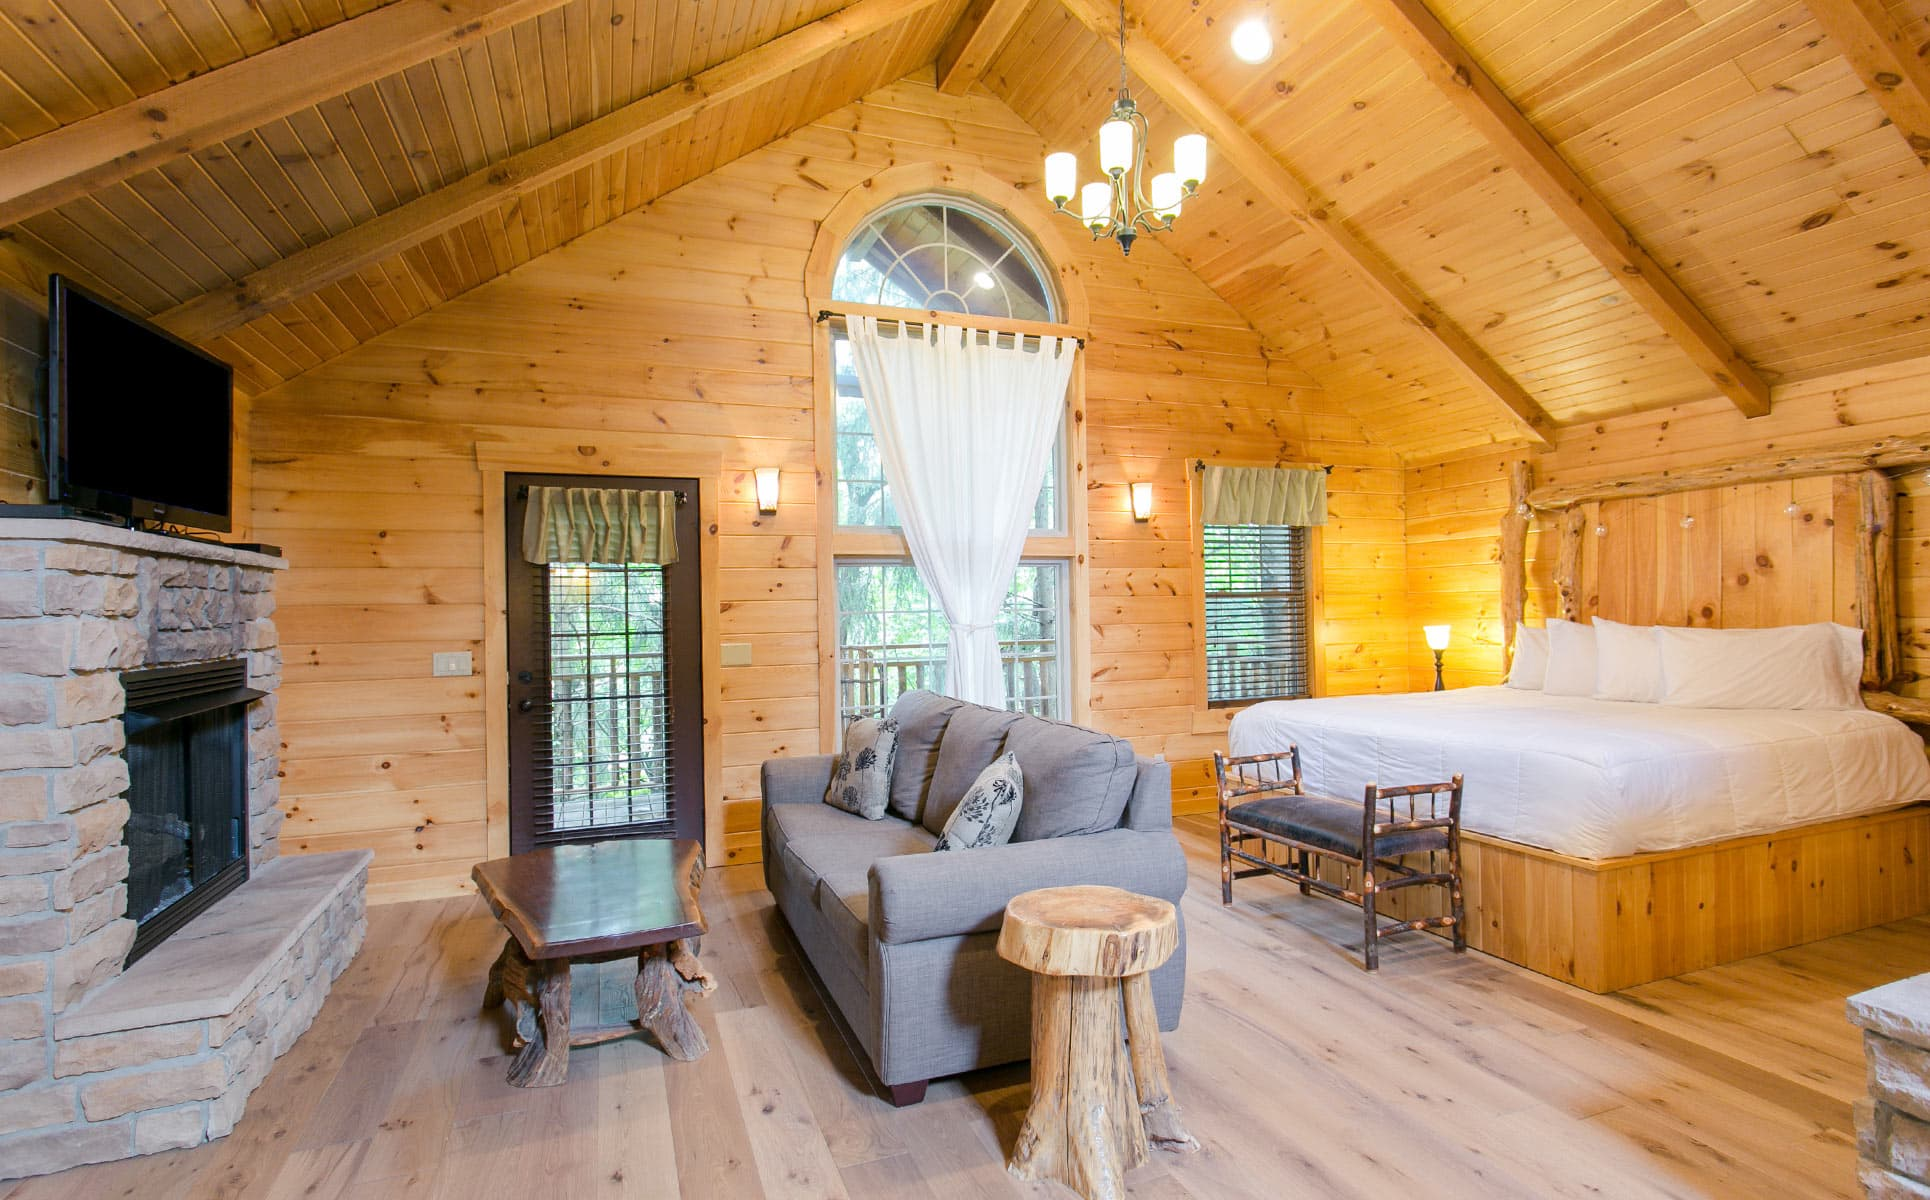 Interior of Treehouse with bed, couch, stone fireplace, and TV